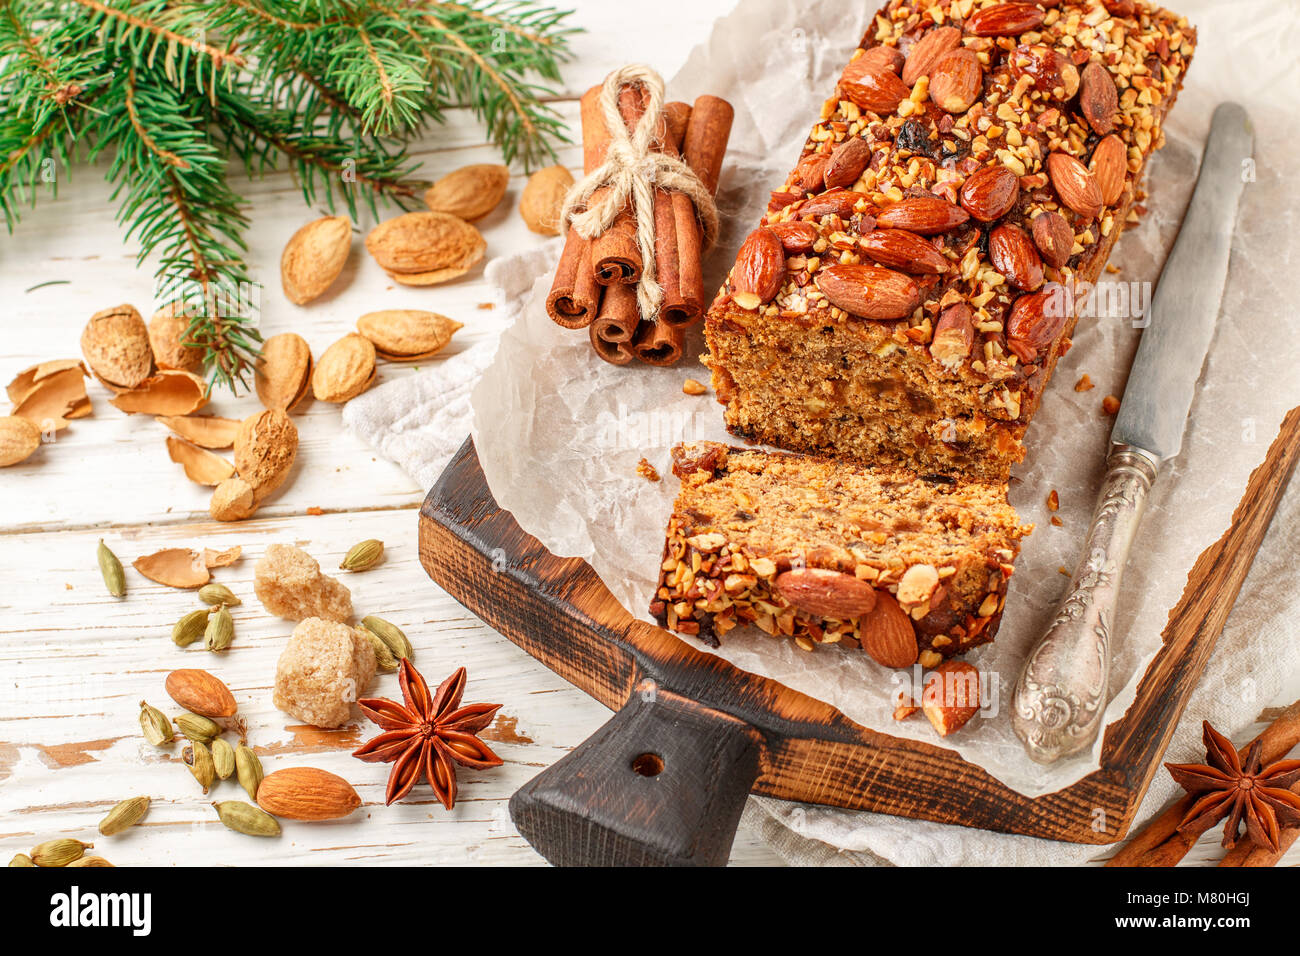 Festive Homemade Holiday Fruitcake with Nuts, Fruit and spices. Almonds, cinnamon, star anise, cardamom on the table. - Stock Image